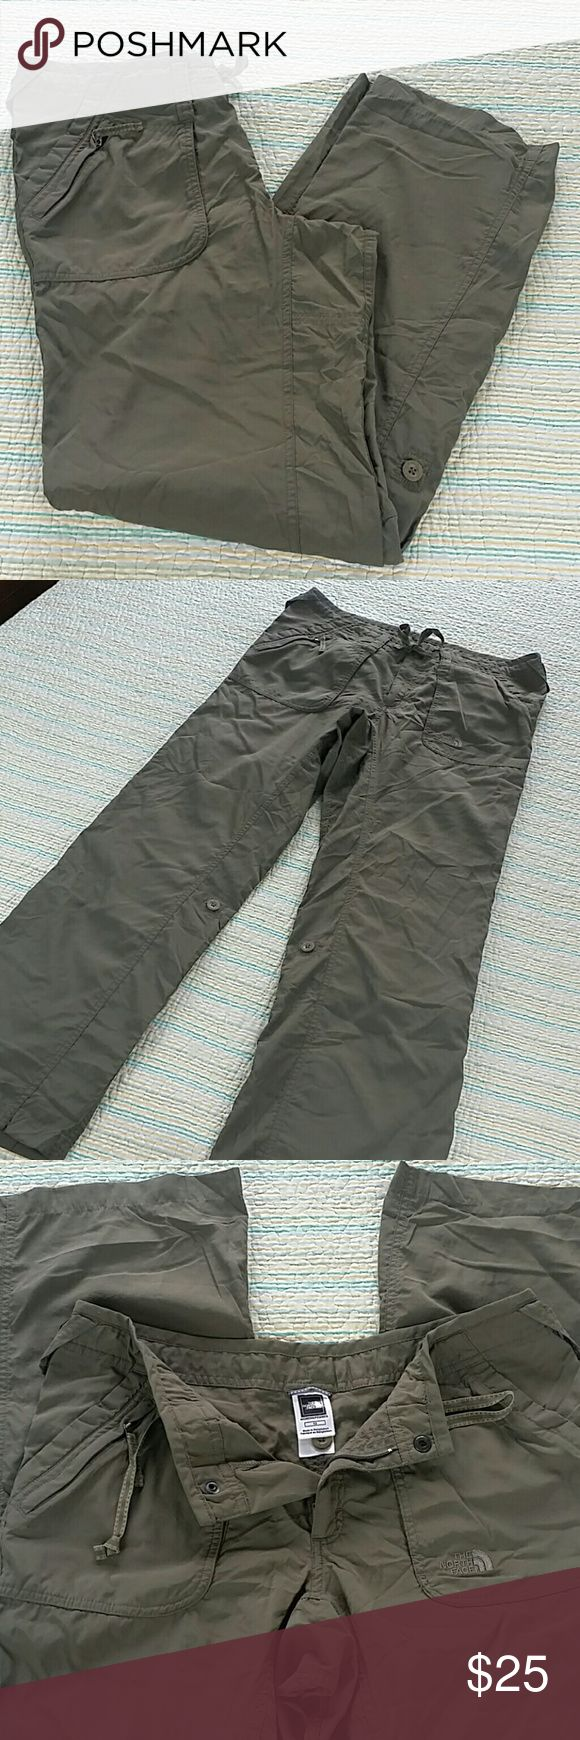 The North Face Pants Size 12 Women's Army Green Ro The North Face Pants Size 12 Women's Army Green Roll-up Casual Cropped Capris The North Face Pants